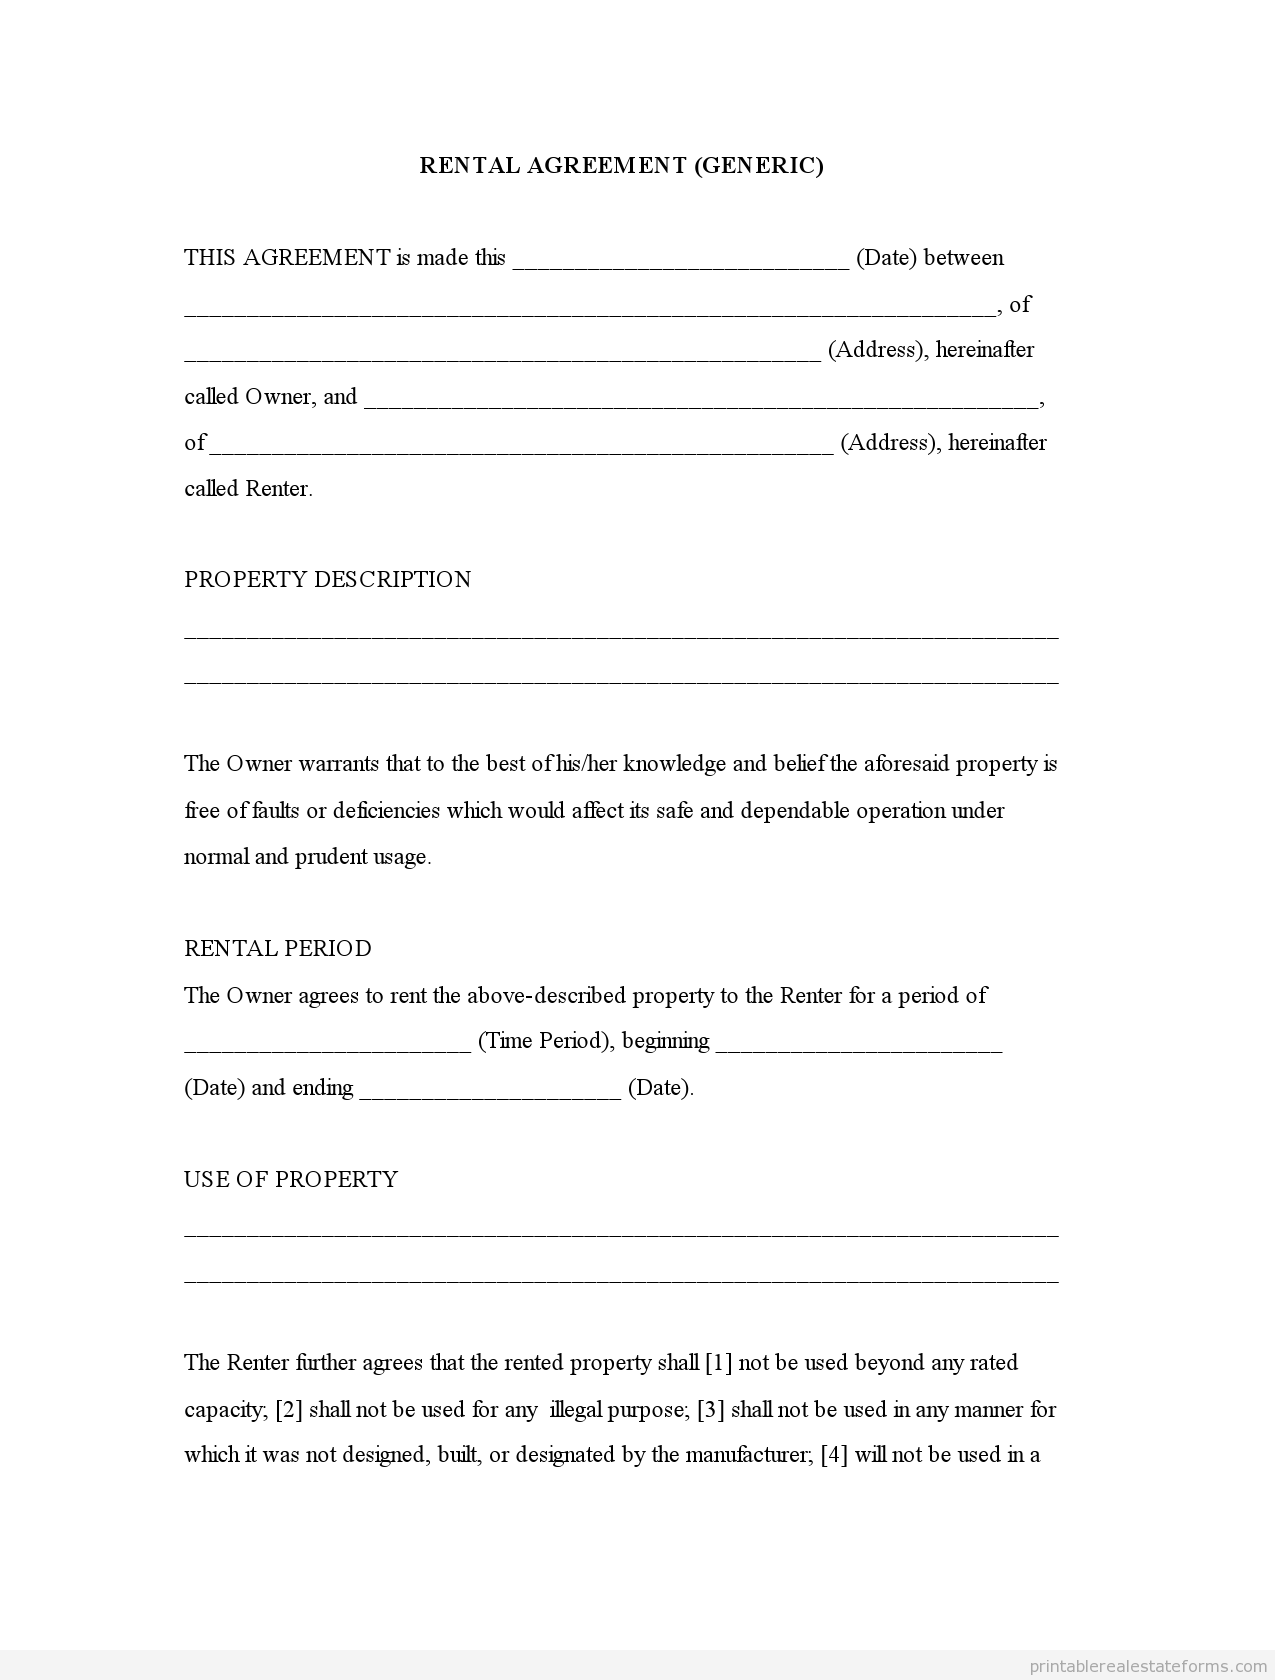 Free Printable Rental Agreement – Printable Rental Agreement Template